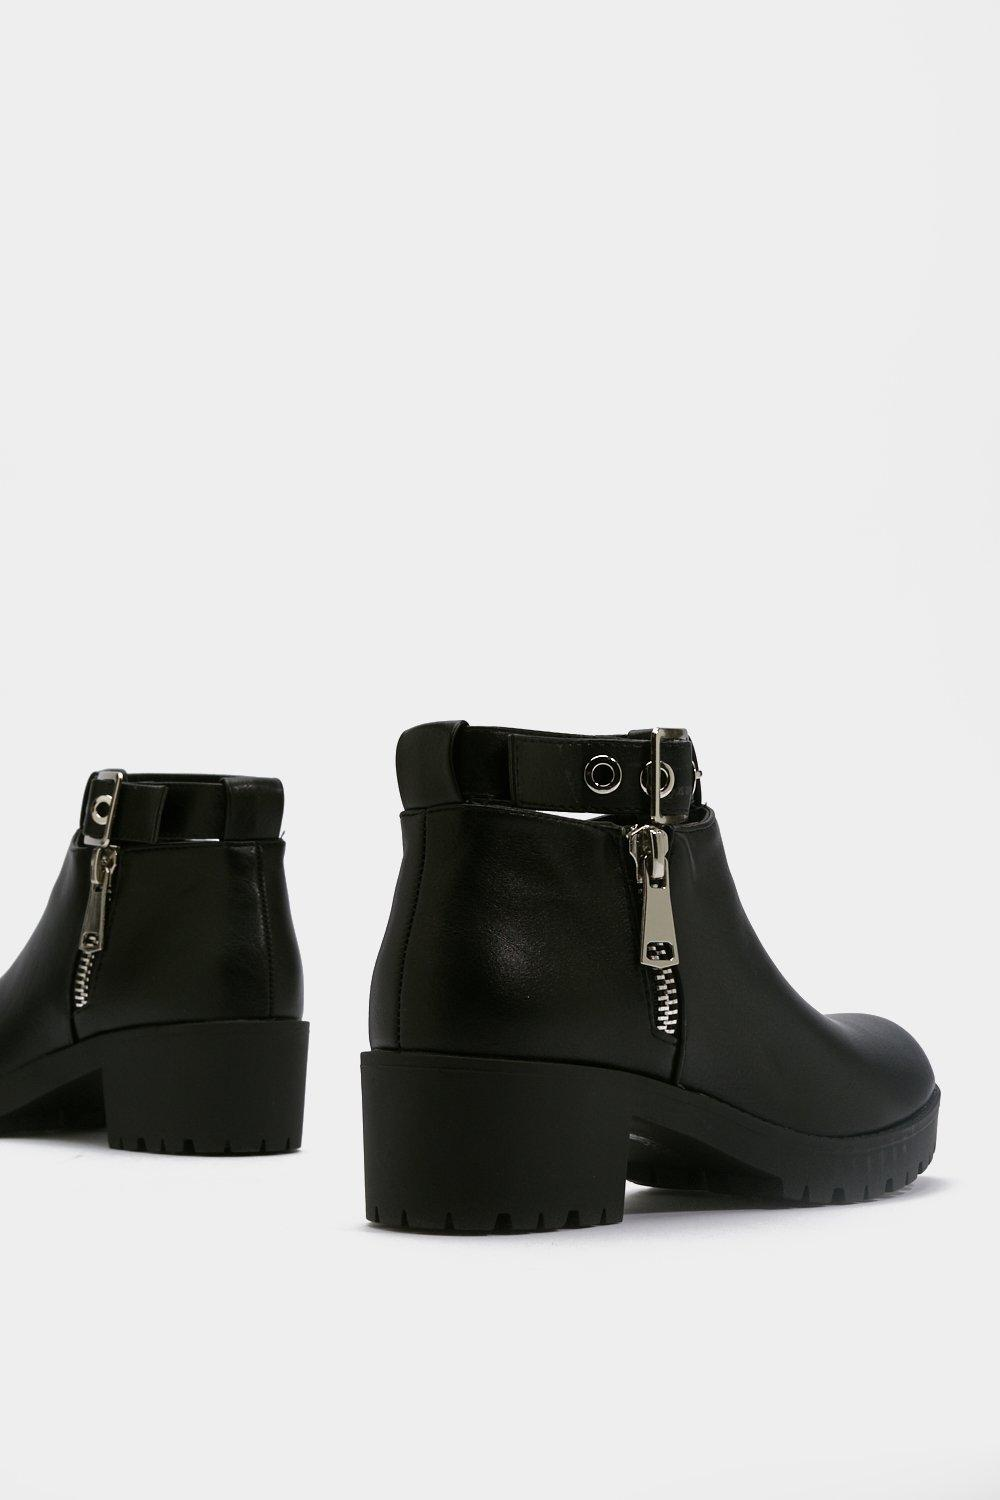 ad39903964c Cut Out Zip Ankle Boots | Shop Clothes at Nasty Gal!